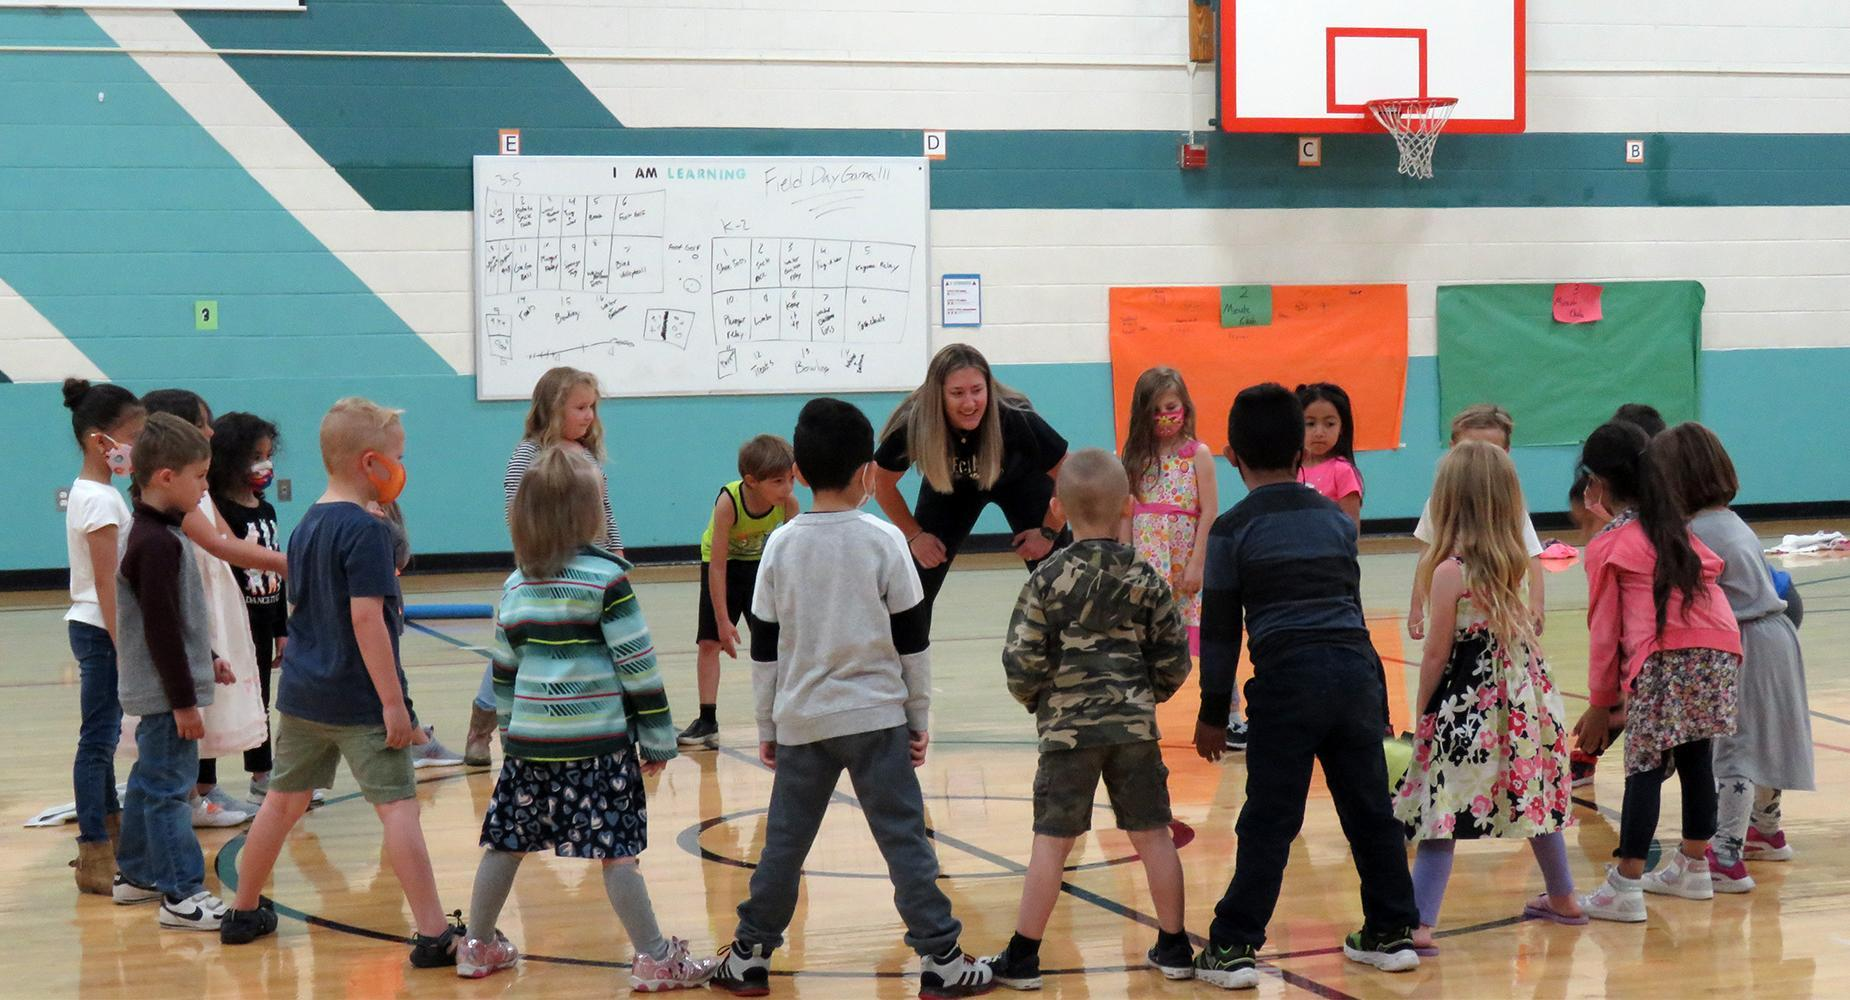 Young children in a circle with PE teacher, passing a ball